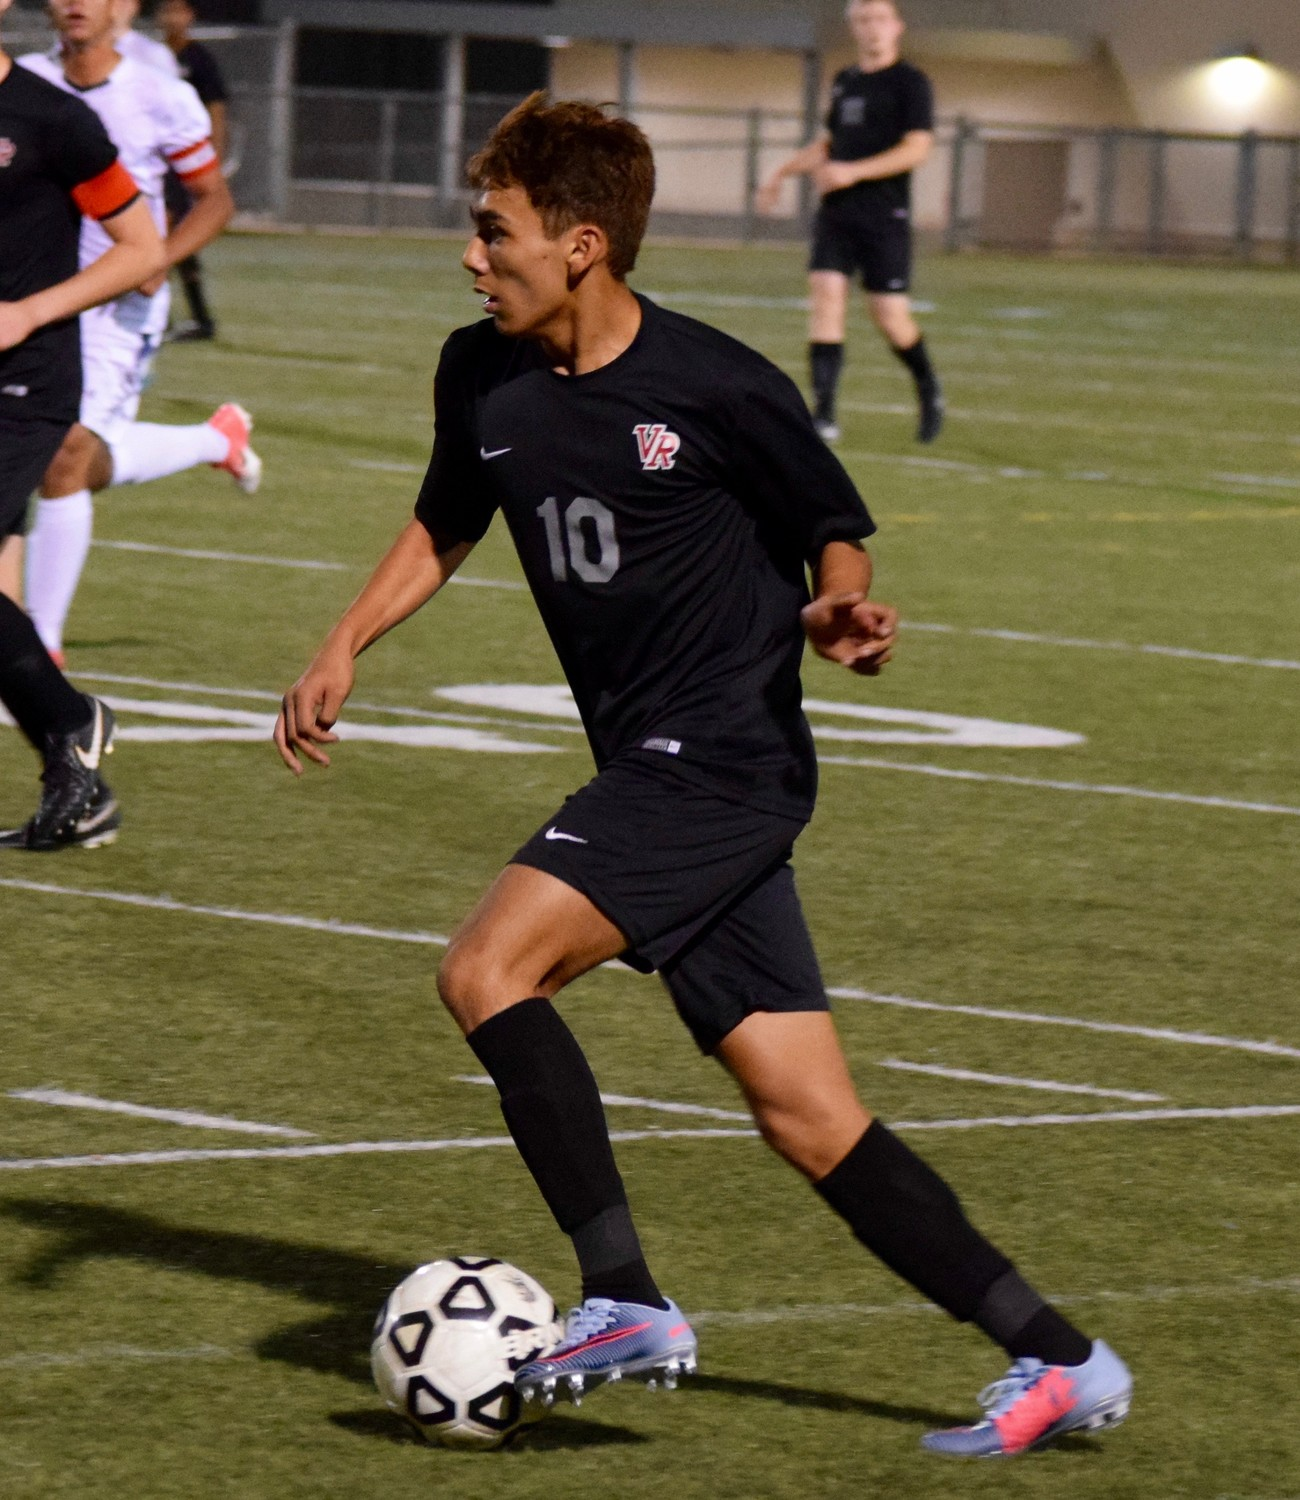 Angel Rocha and Vista Ridge lost to San Antonio Johnson Thursday night in the first round of the playoffs at Dripping Springs High School.